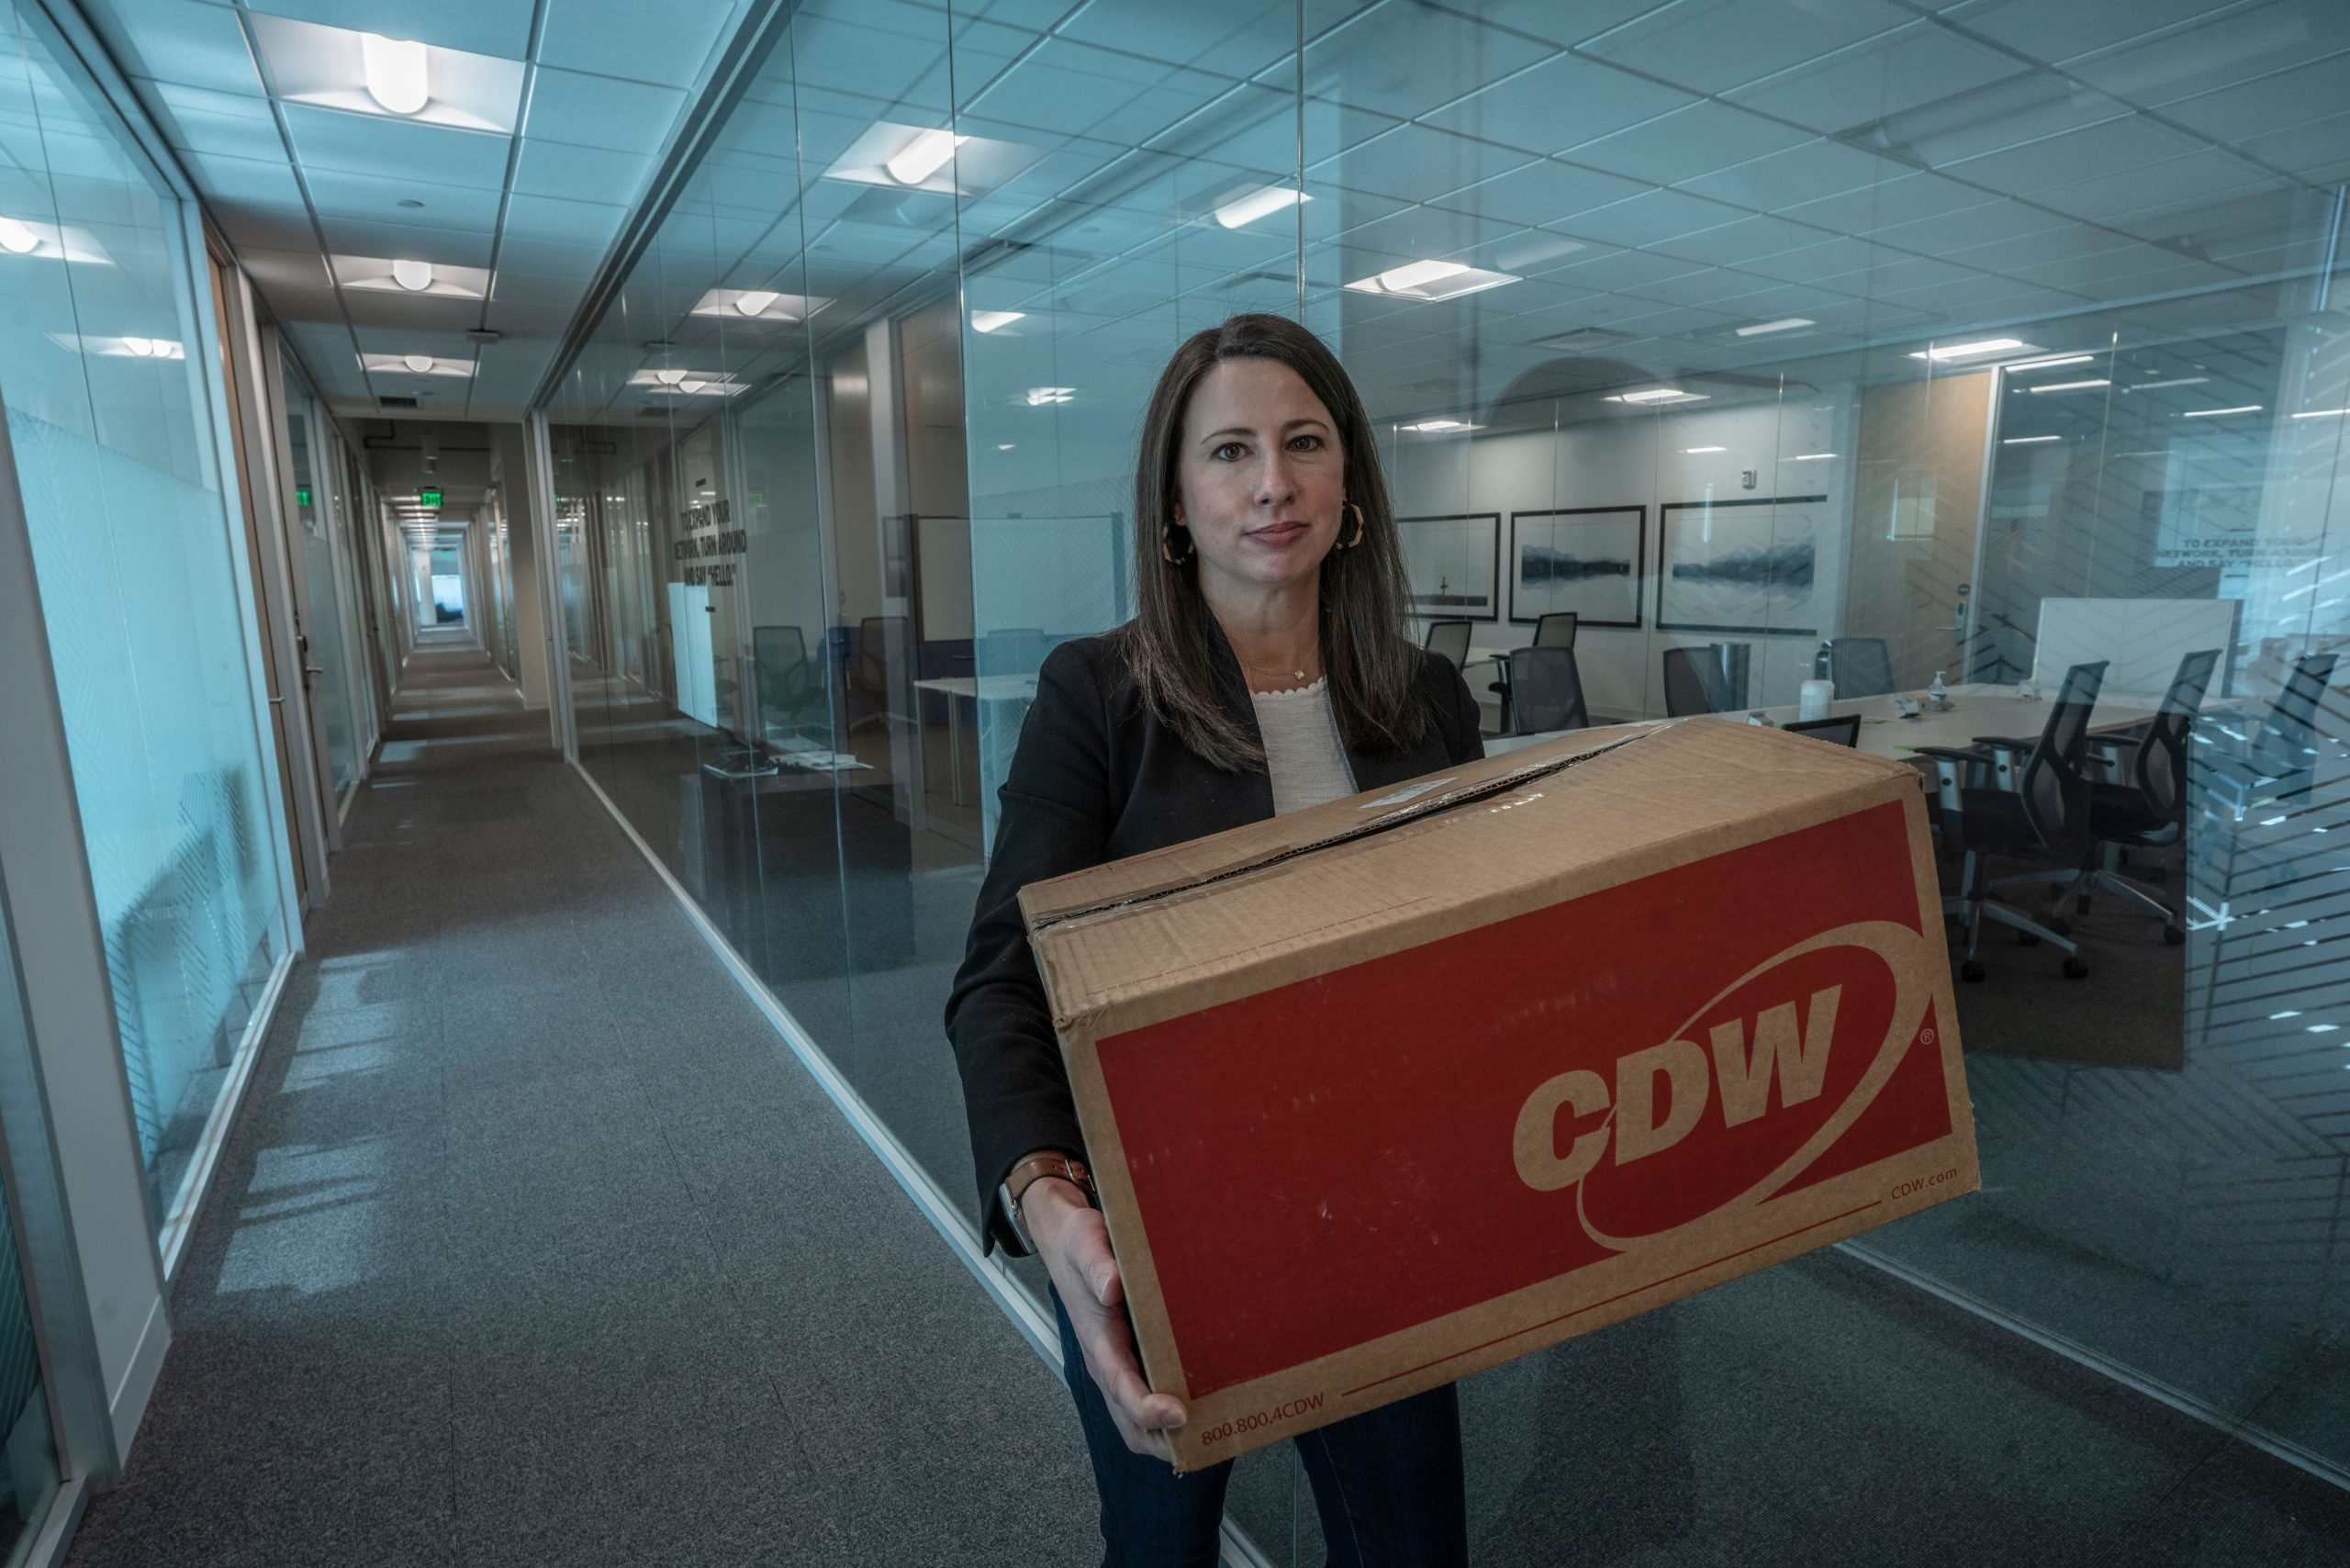 Meg Chamblee of UDig leaves her office with materials to take to her home office. (Photo: John Partipilo)